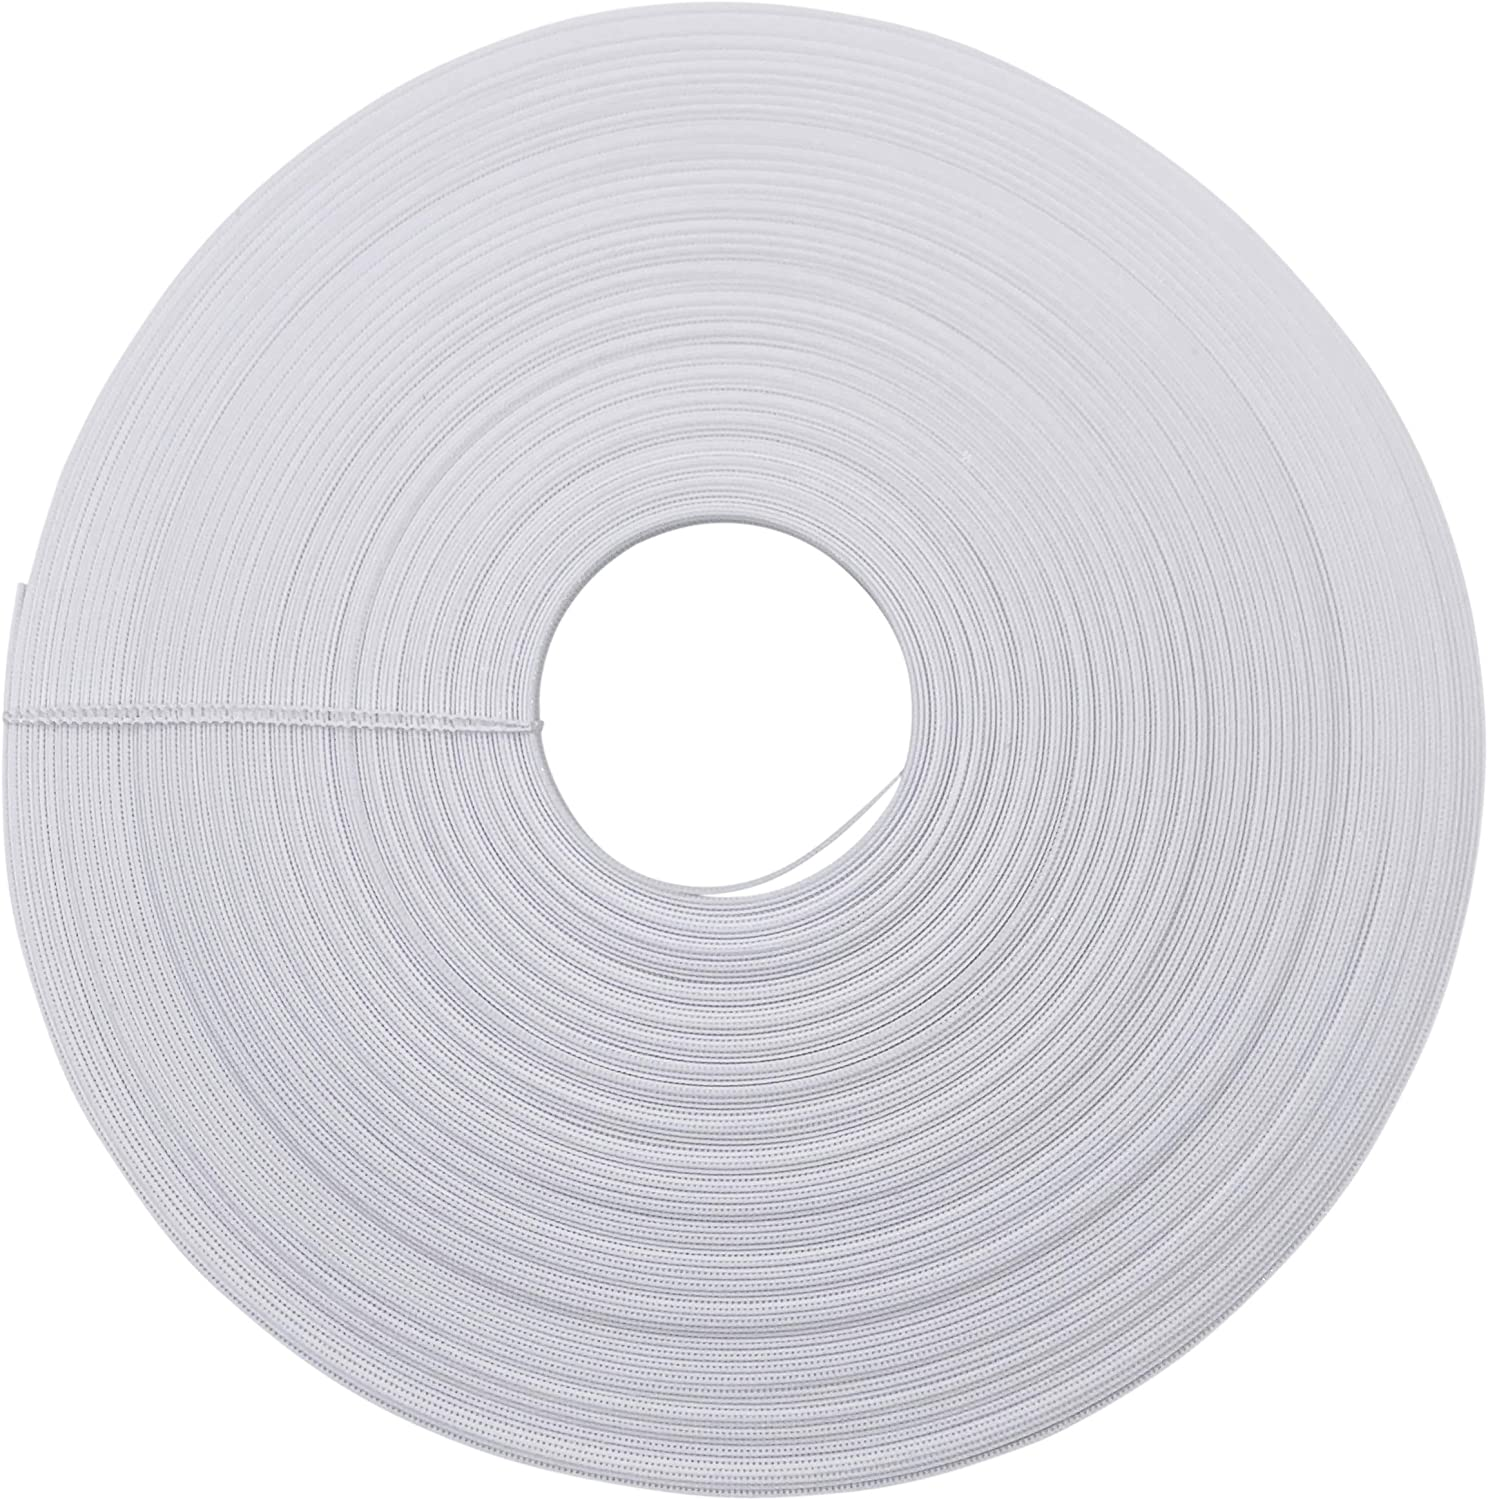 50yards // roll,Boning for Sewing Wedding Dresses,Corset Boning,Bridal Gowns,Banquet Dresses,Performance Clothes ,Nursing Cap,etc Polyester Boning,3//10 inch 8mm Wide White Boning